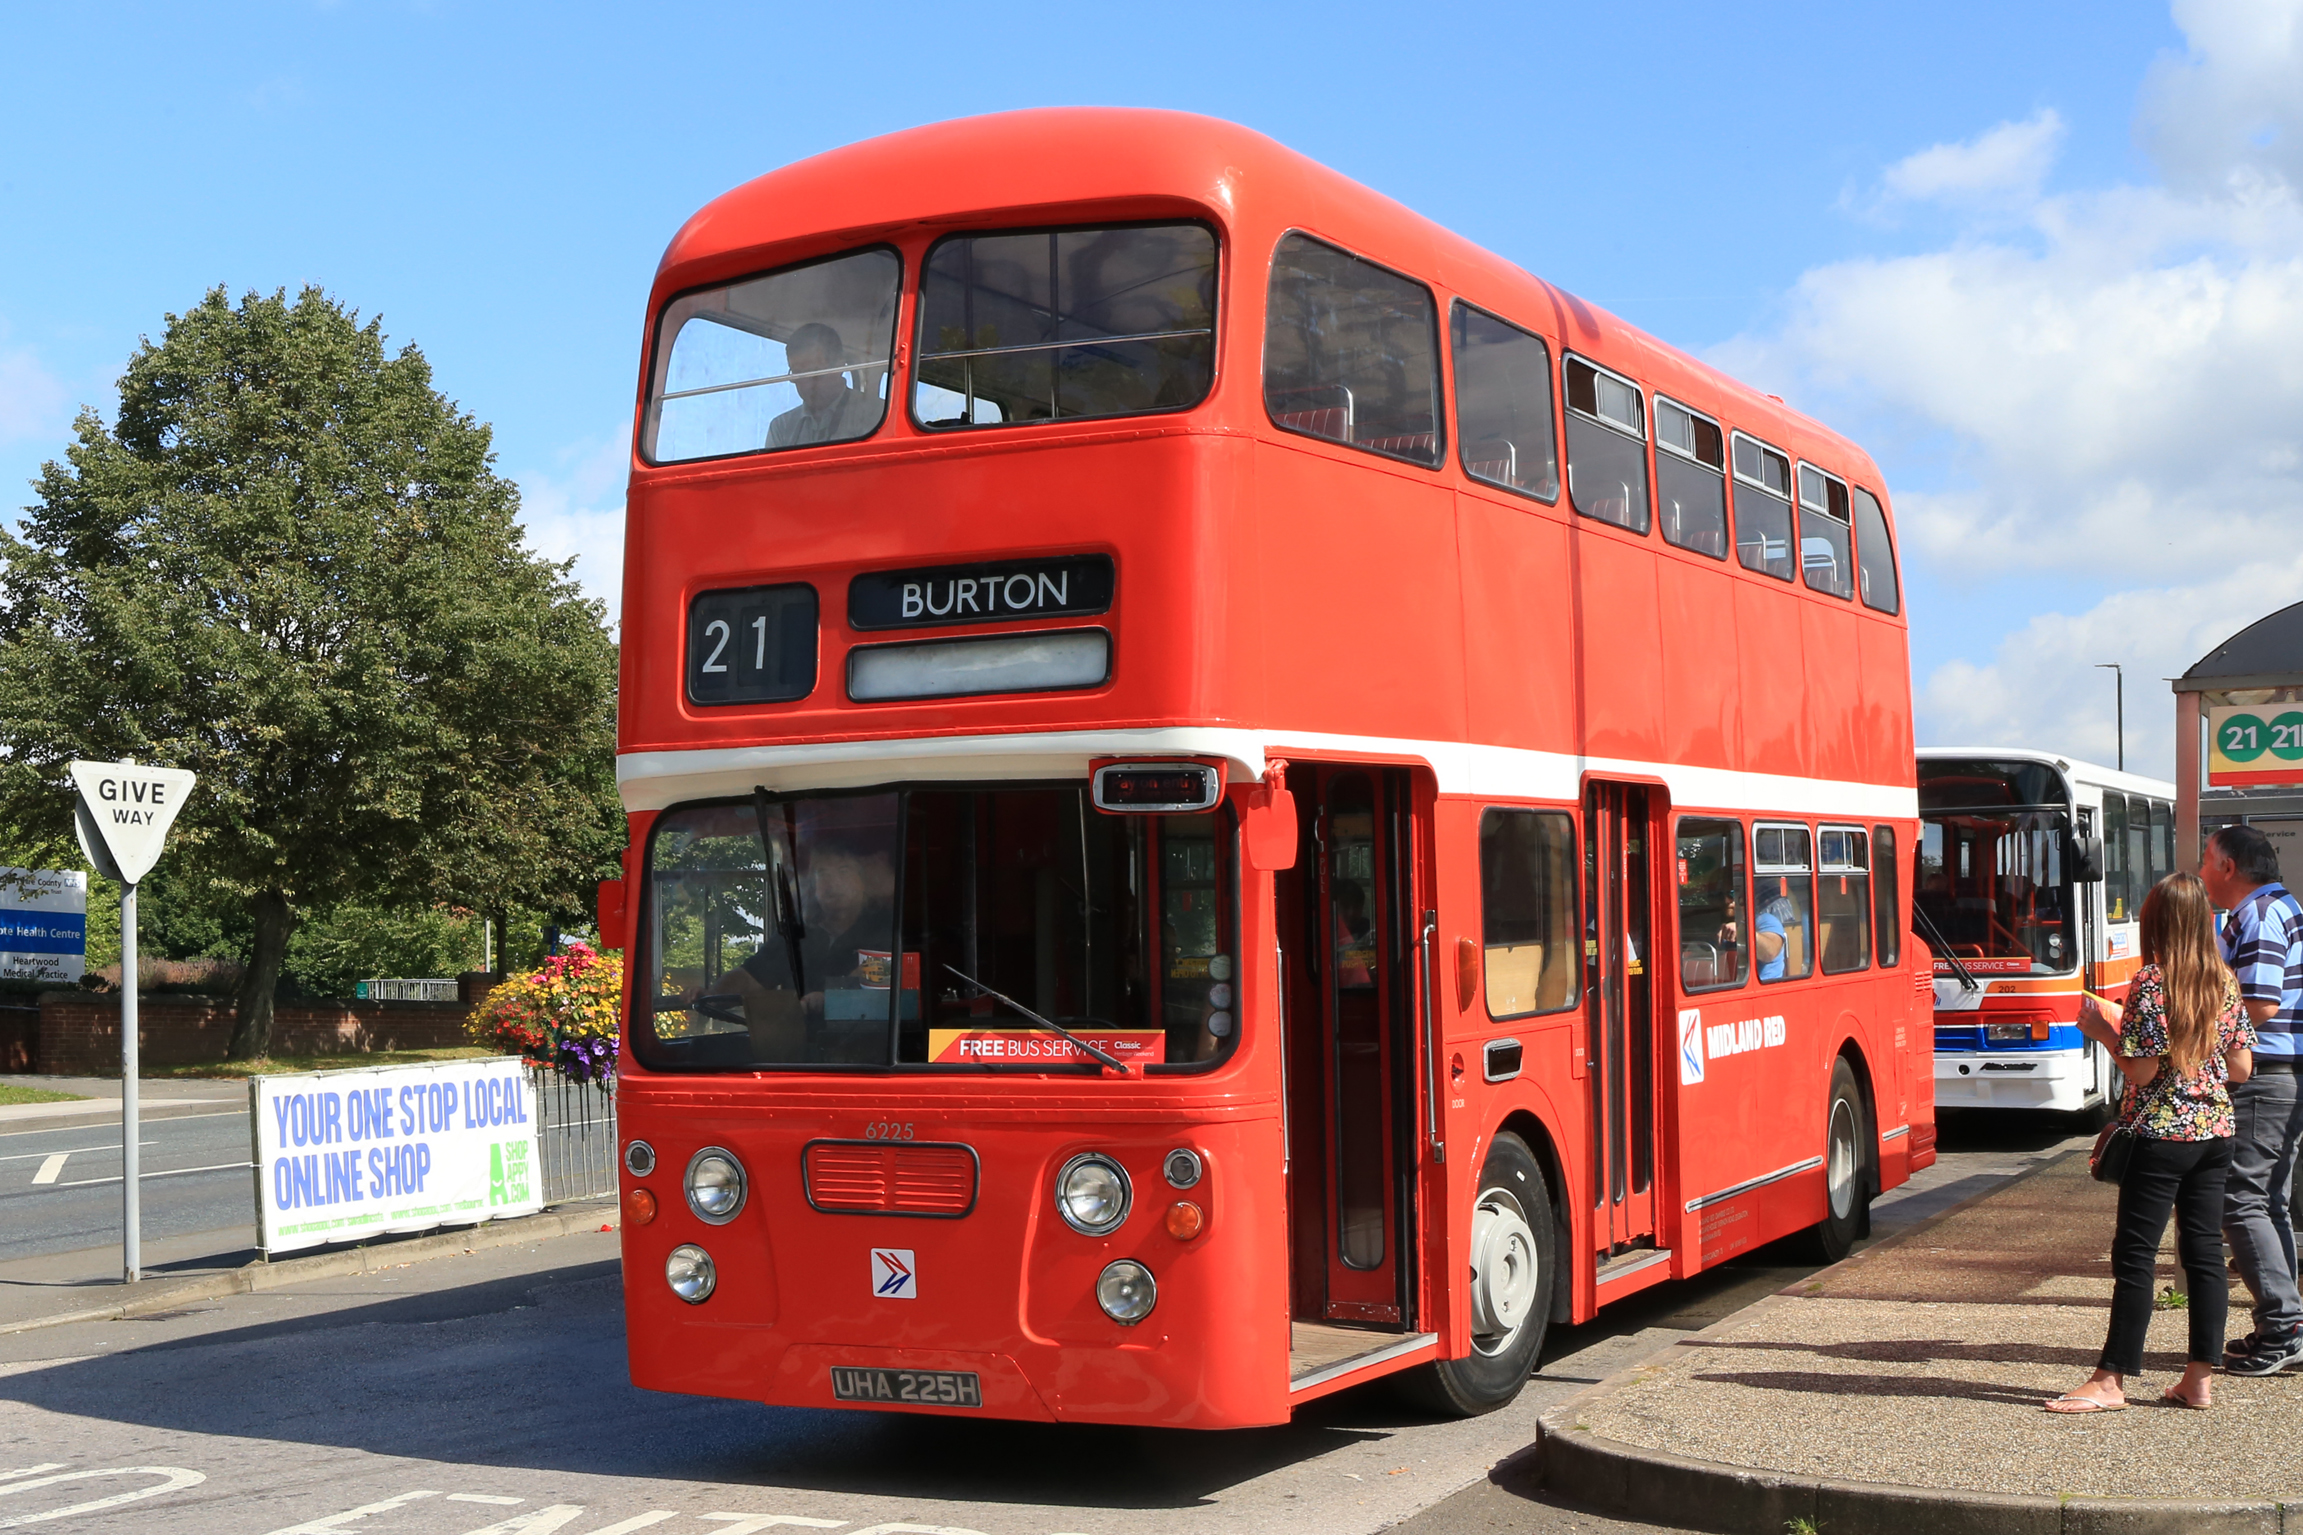 This Daimler Fleetline restored in NBC poppy red and seen in Swadlincote bus station was one of the last double-deckers ordered by Swadlincote's Midland Red before it split into six parts